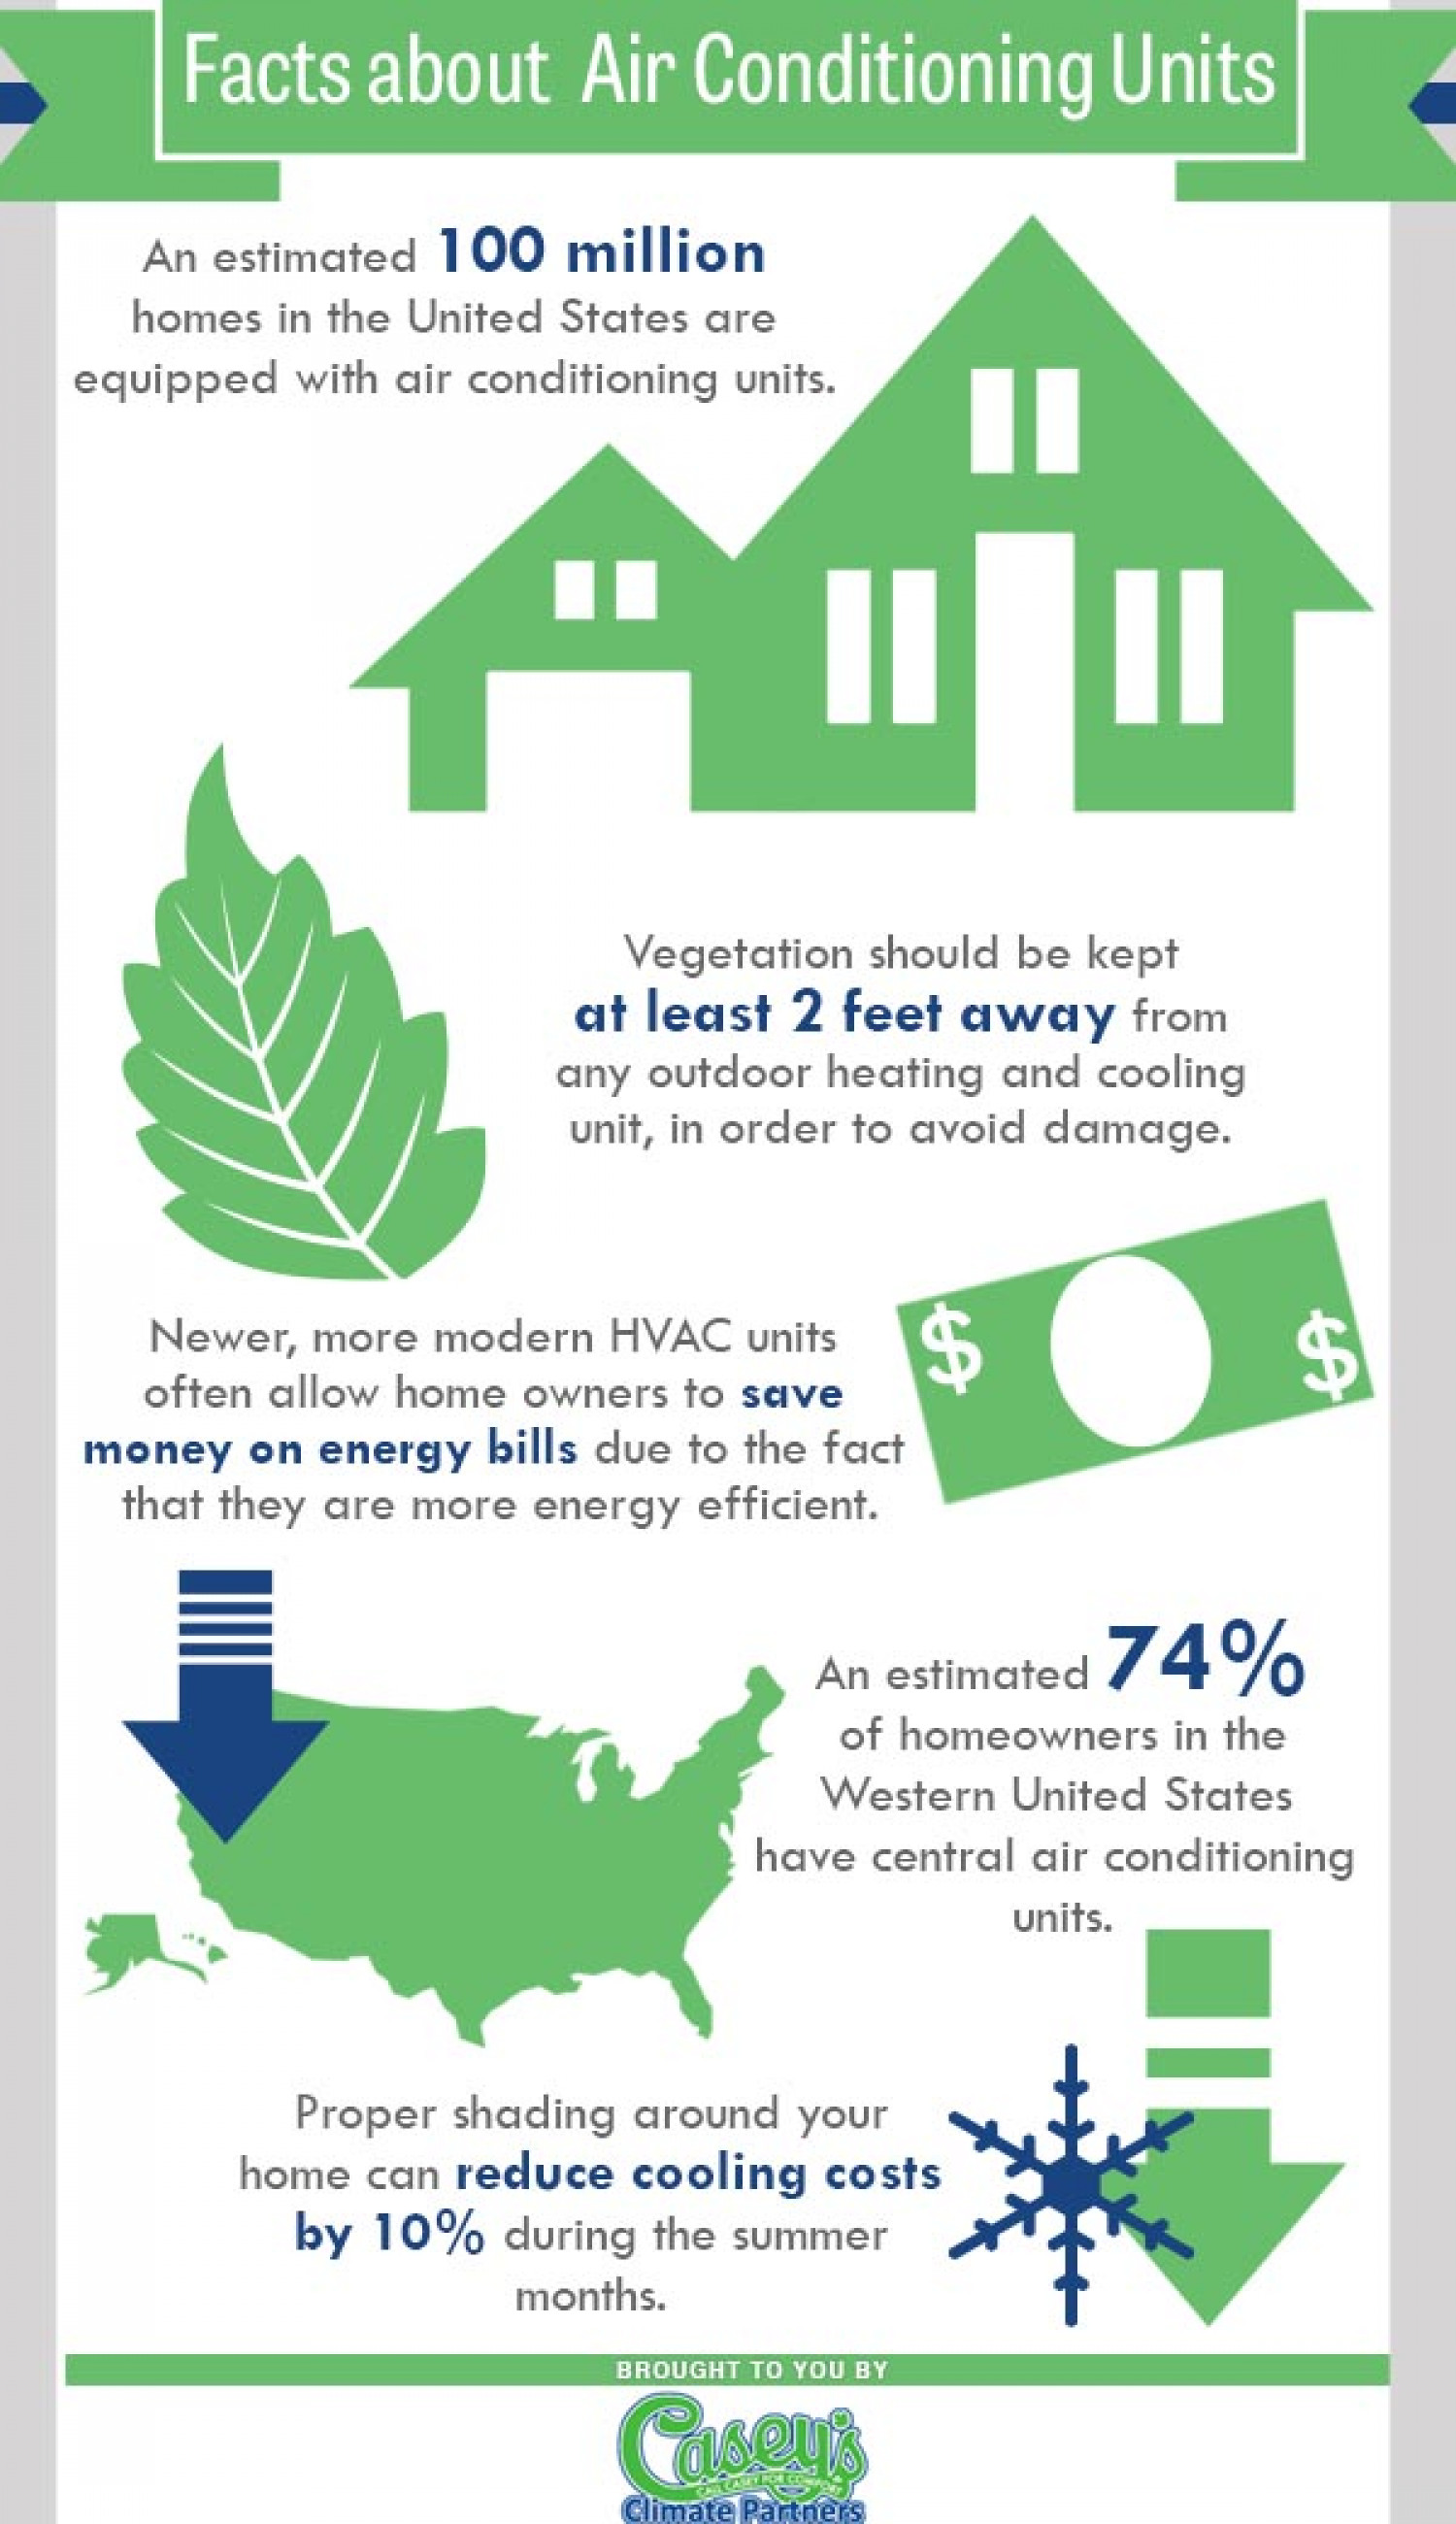 Facts About Air Conditioning